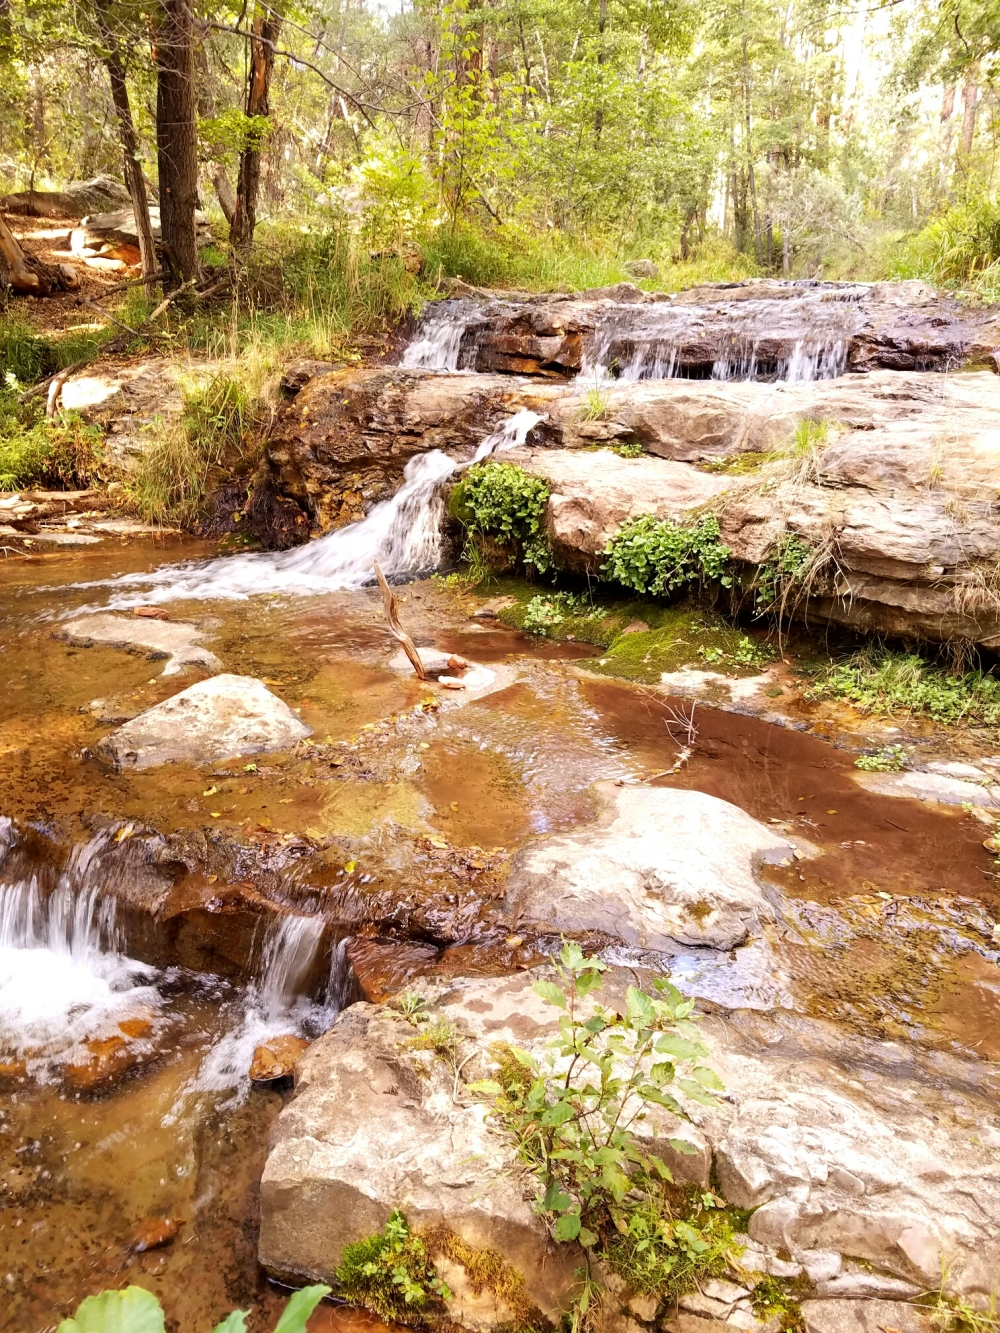 Horton Creek waterfalls